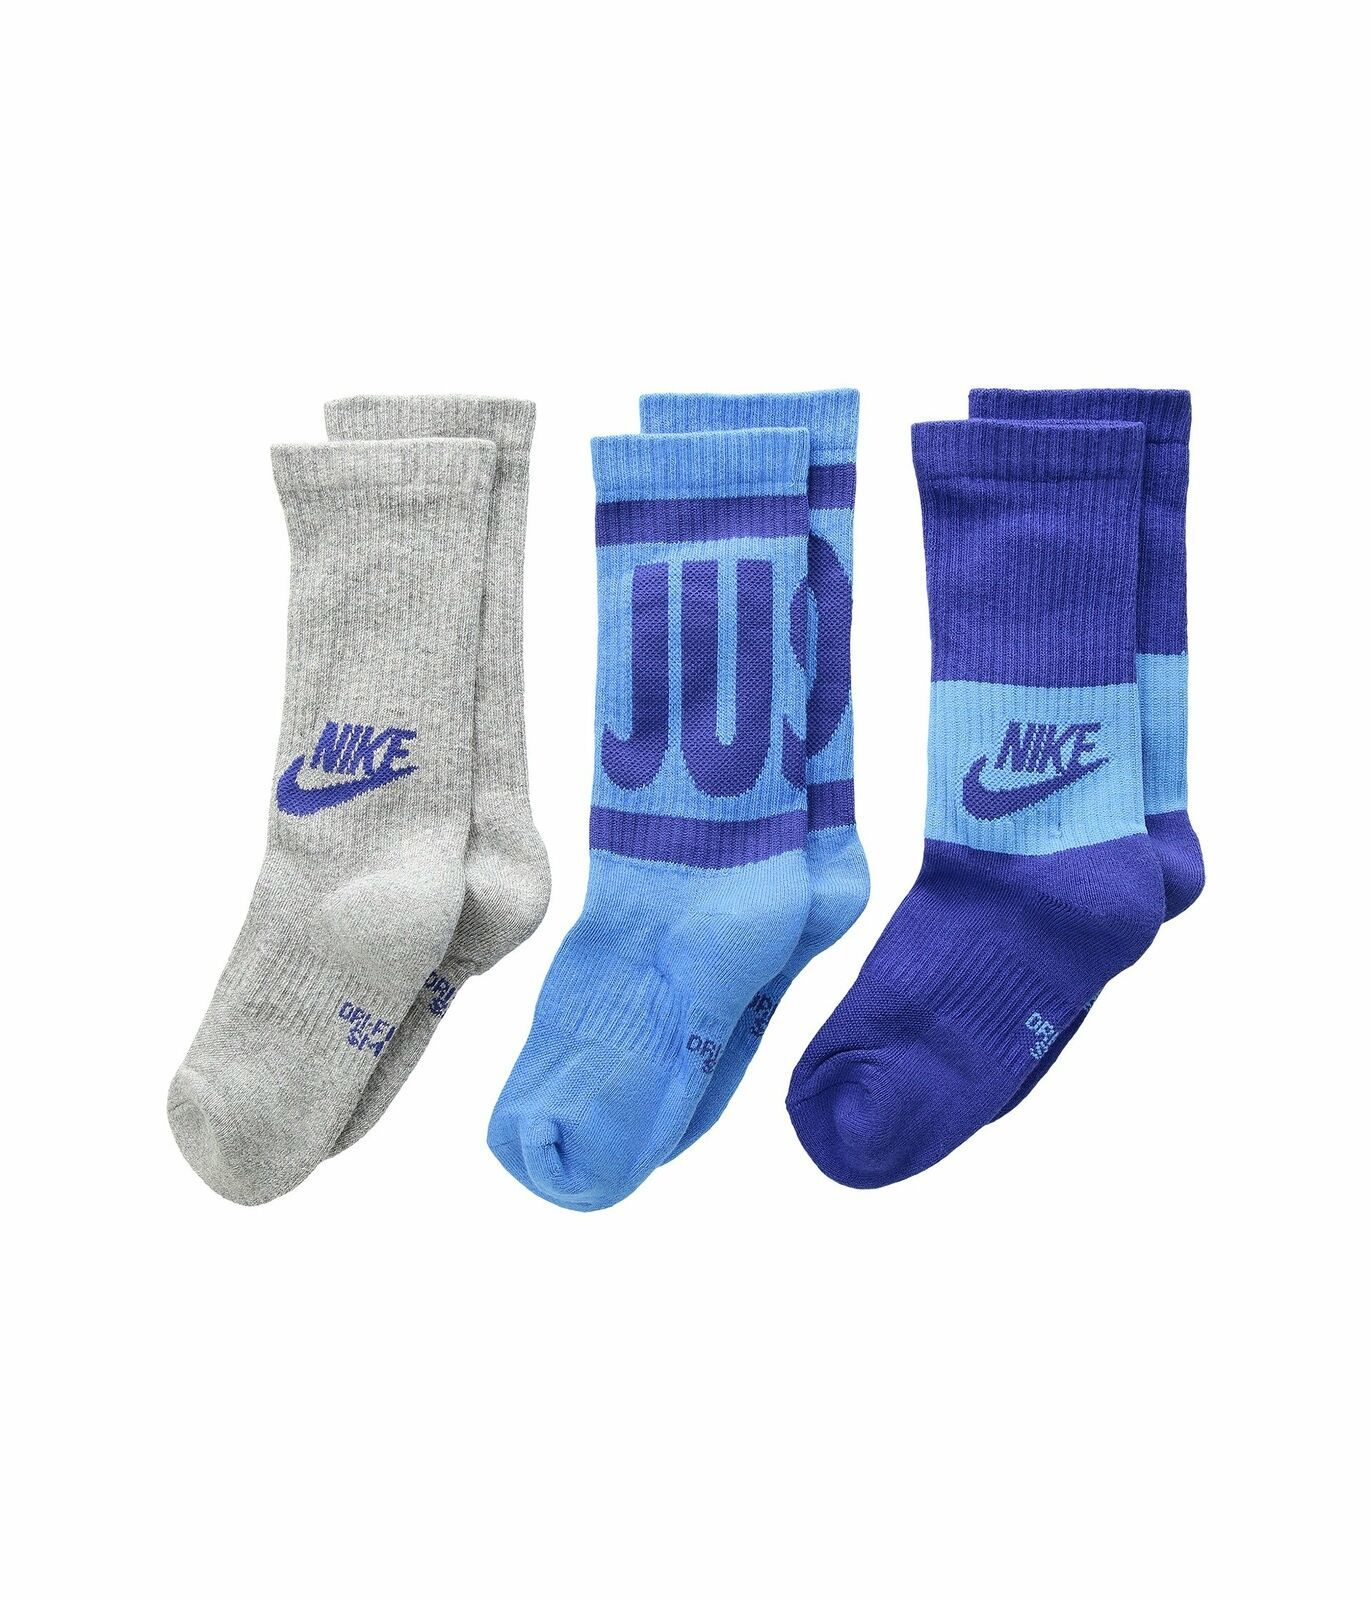 Nike Boys 3PK Performance Training Crew Socks Small 3Y-5Y SX6839-943 image 4